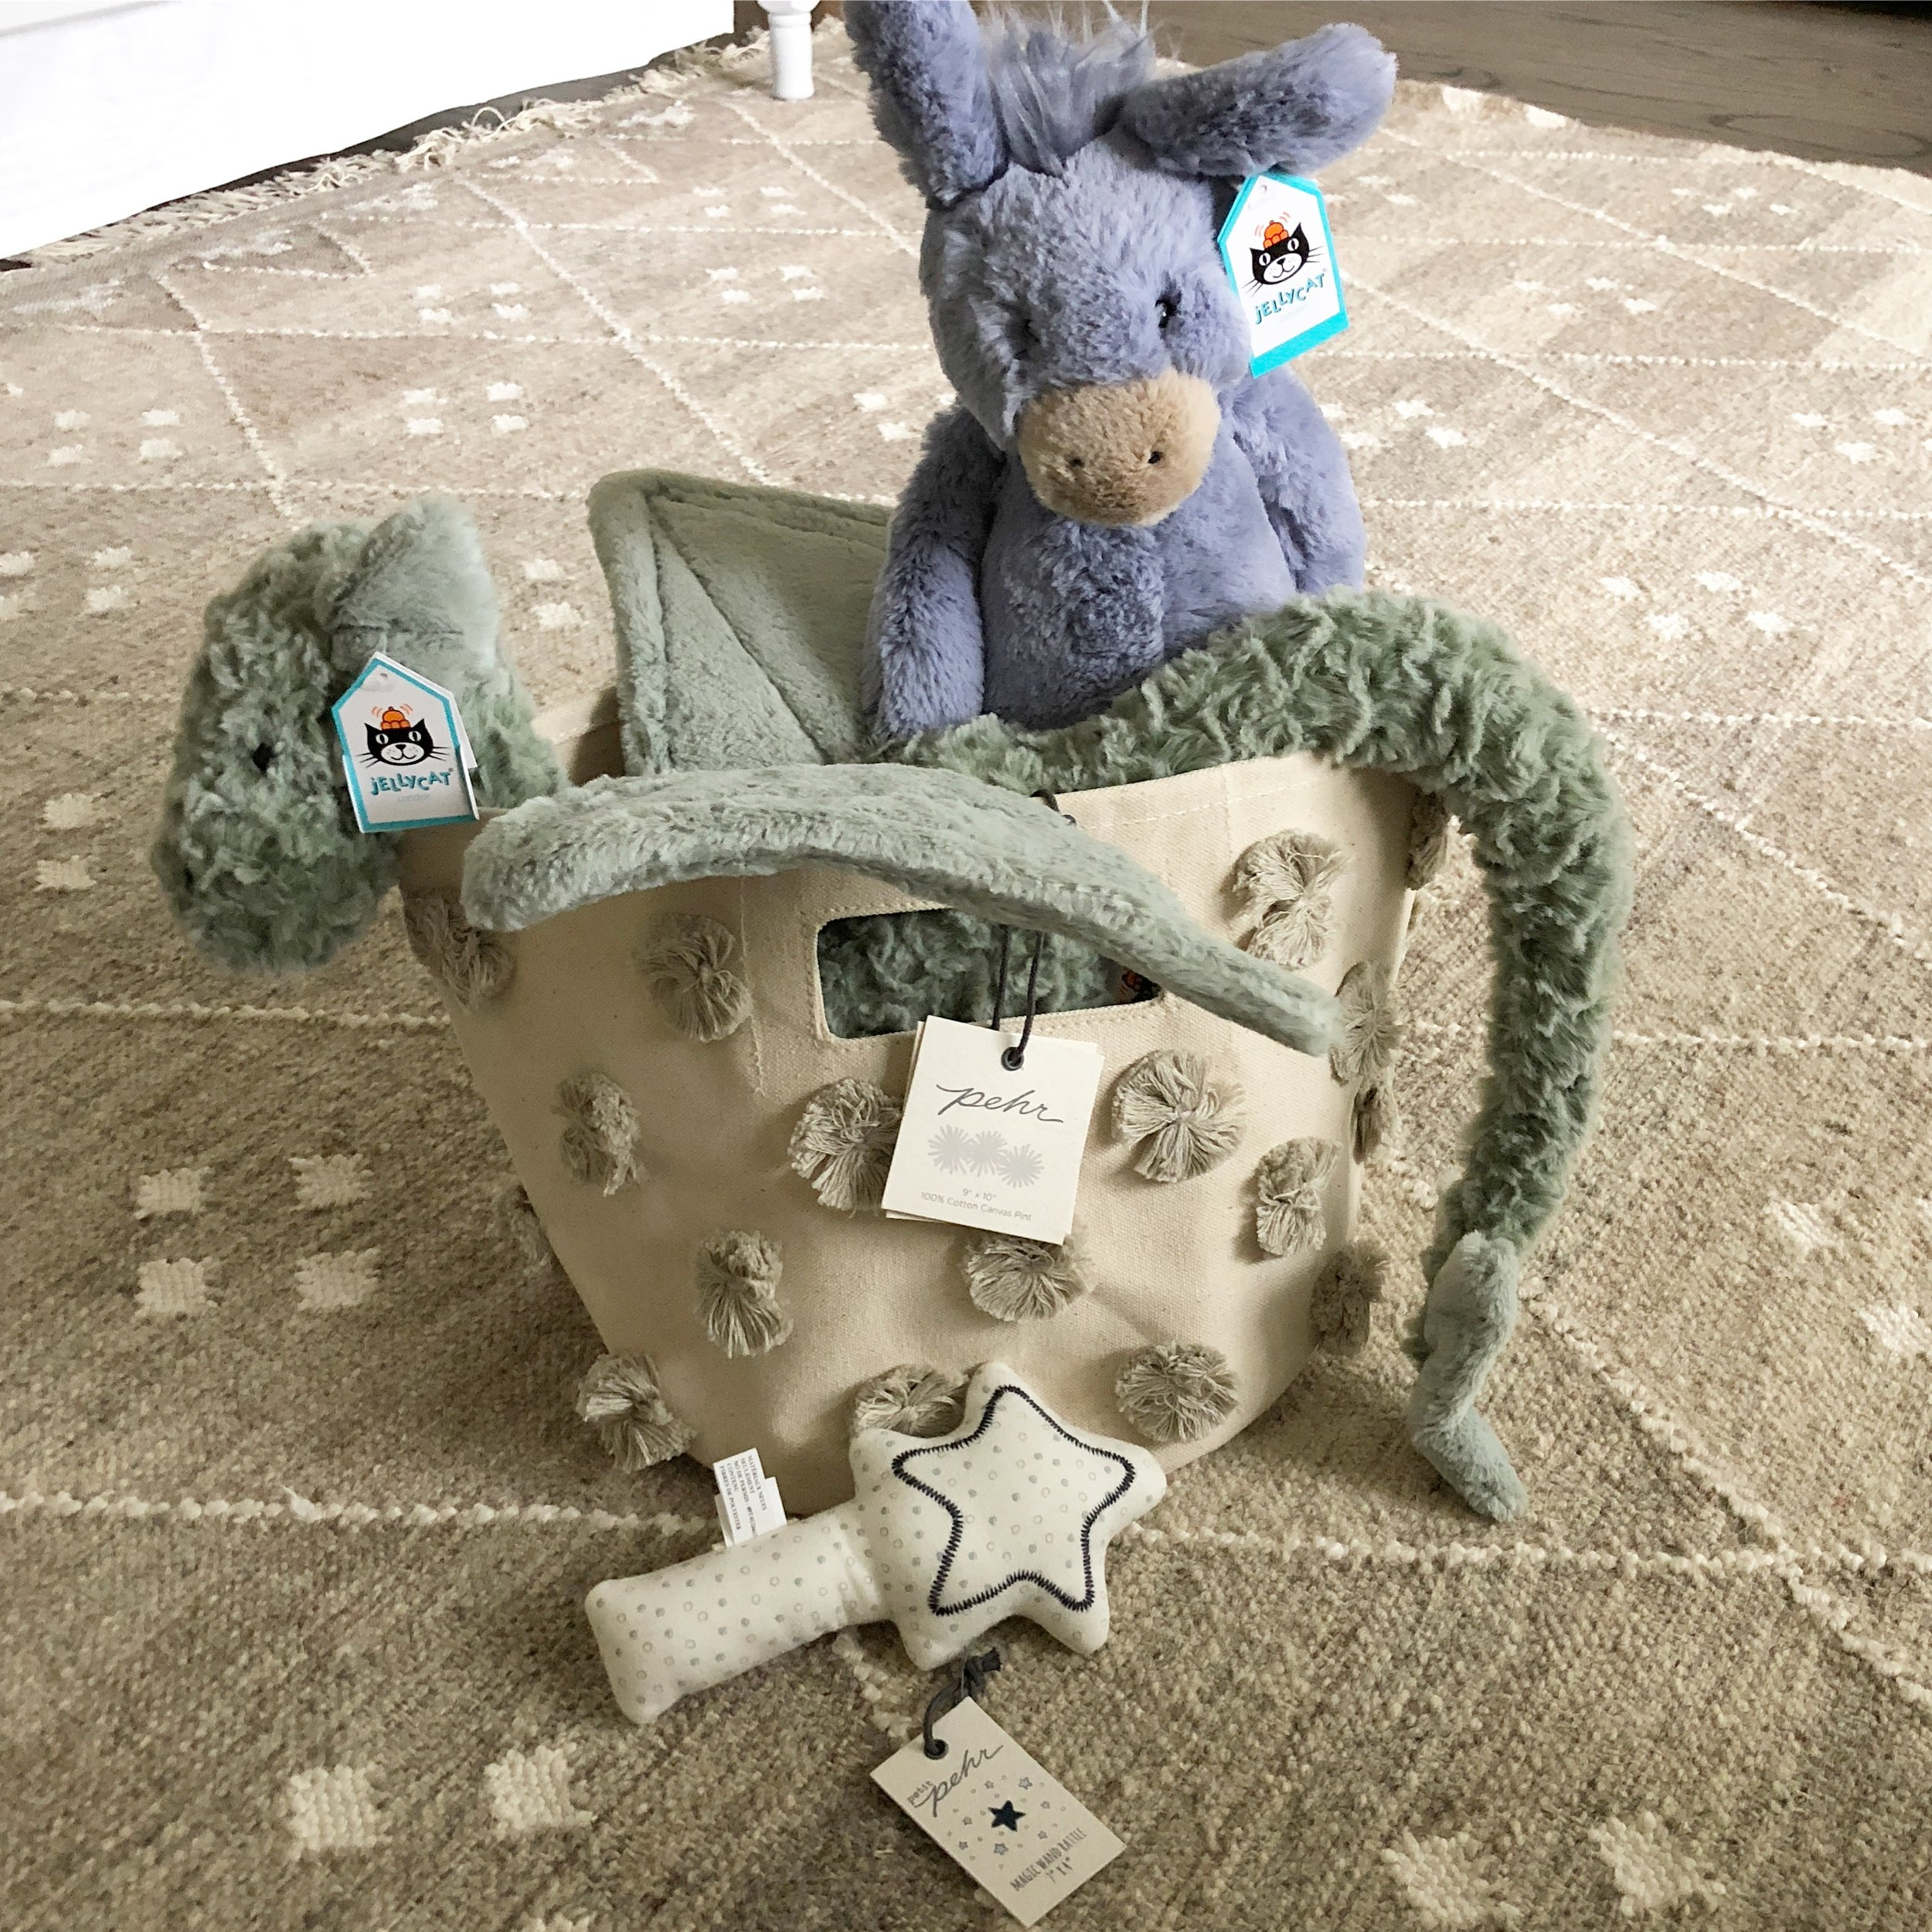 - Jellycat stuffed animals for Jacob and baby, as well as a few items from Pehr Designs (like this darling star rattle and pom pom bin) because I just couldn't help myself. Indigo's baby section is stocked with some of my favorite brands…